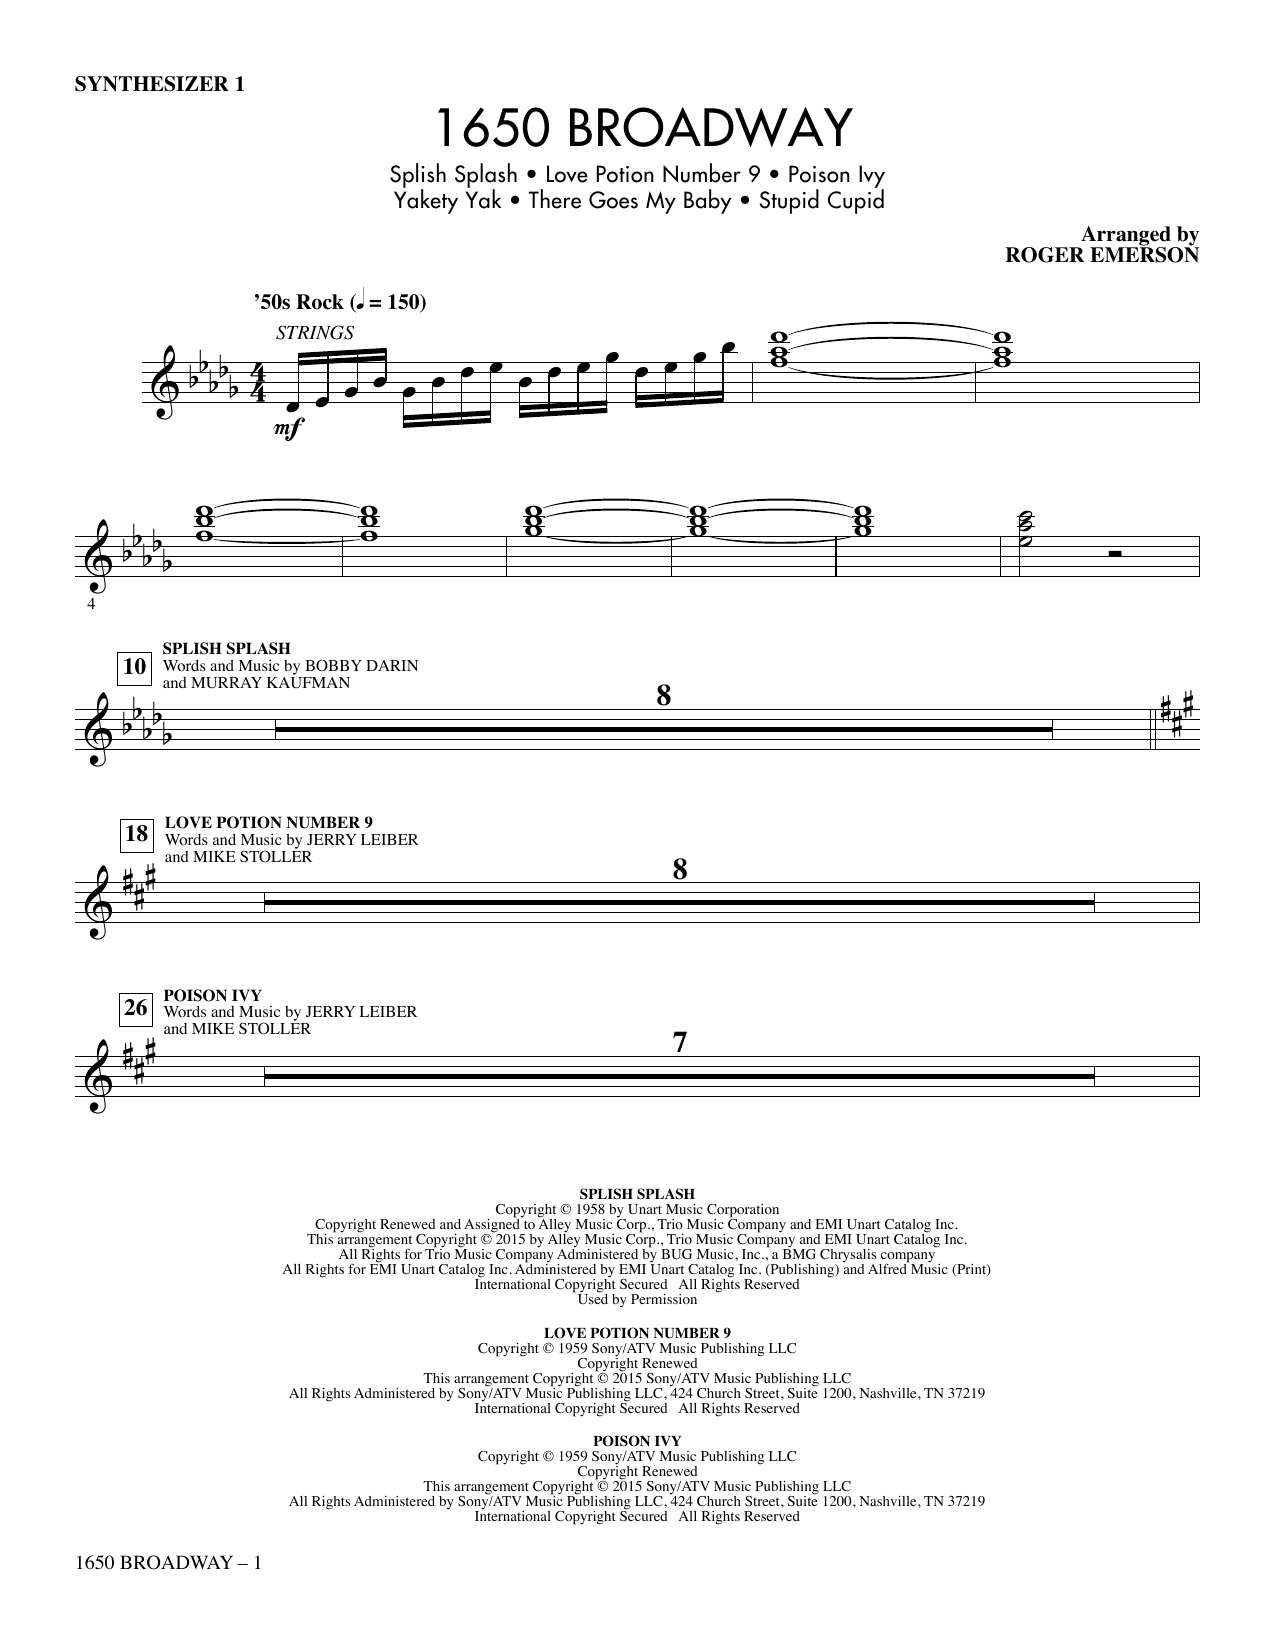 Sheet Music Digital Files To Print Licensed The Searchers Digital